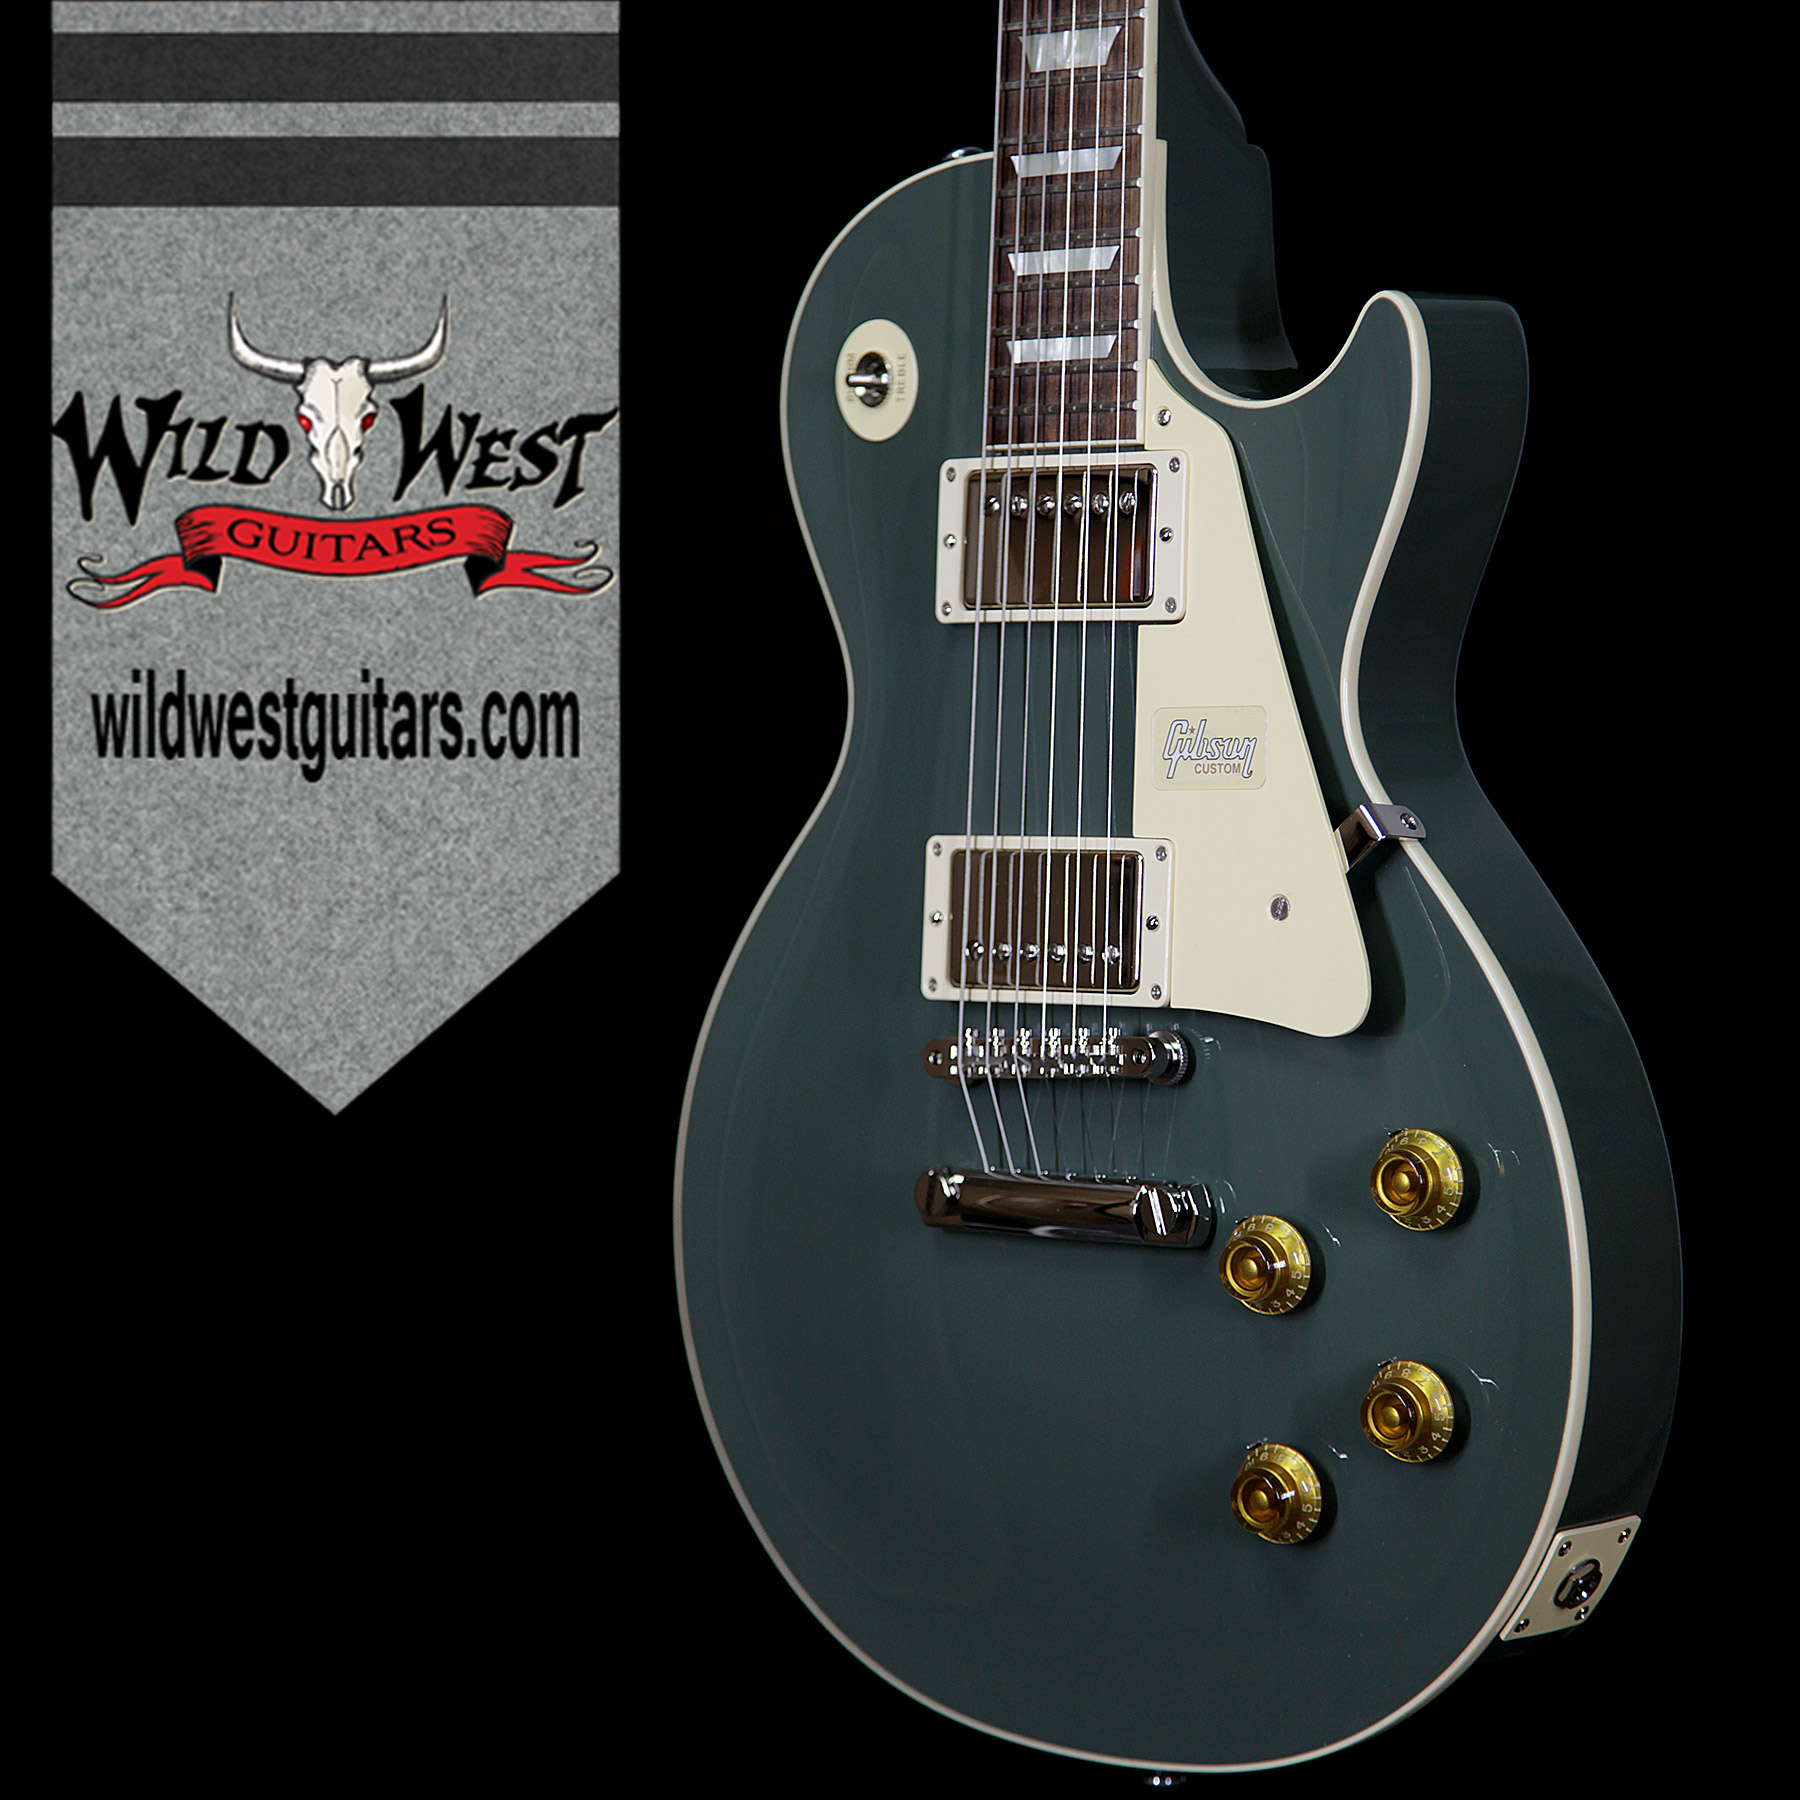 Gibson Custom Shop Les Paul Standard Oxford Grey 840 Pounds Wired Toggle Switch 3 Way Switchcraft Nickel Usa 4 Guitars Electric Solid Body Wild West